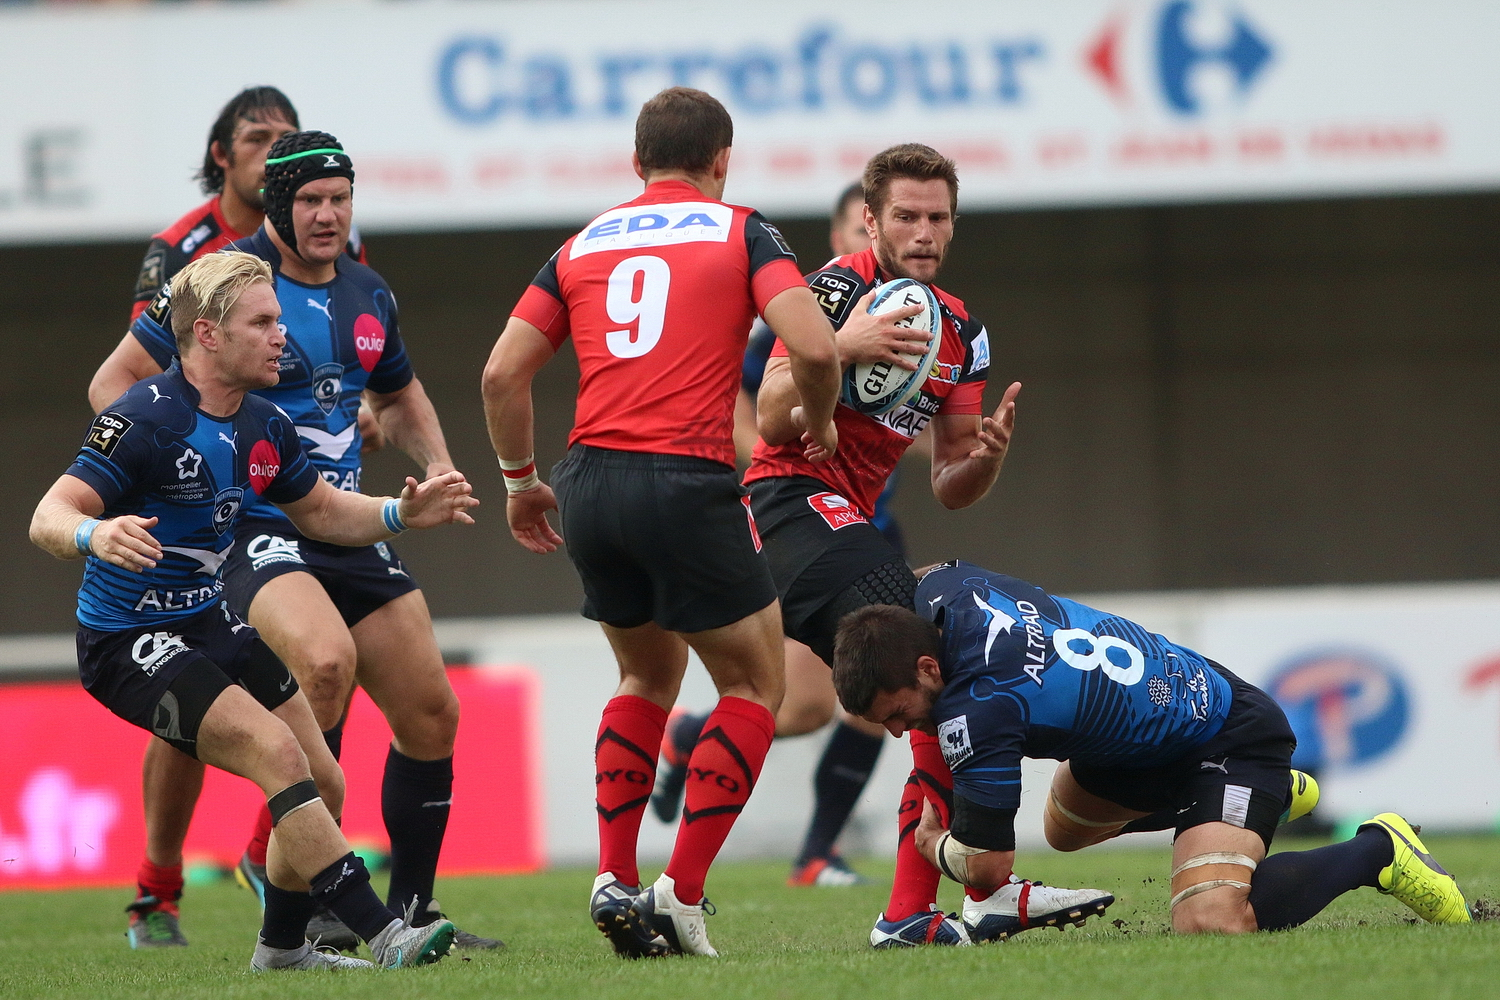 Oyonnax la coupe d europe de tous les dangers coupes d 39 europe rugby - Resultat rugby coupe europe ...